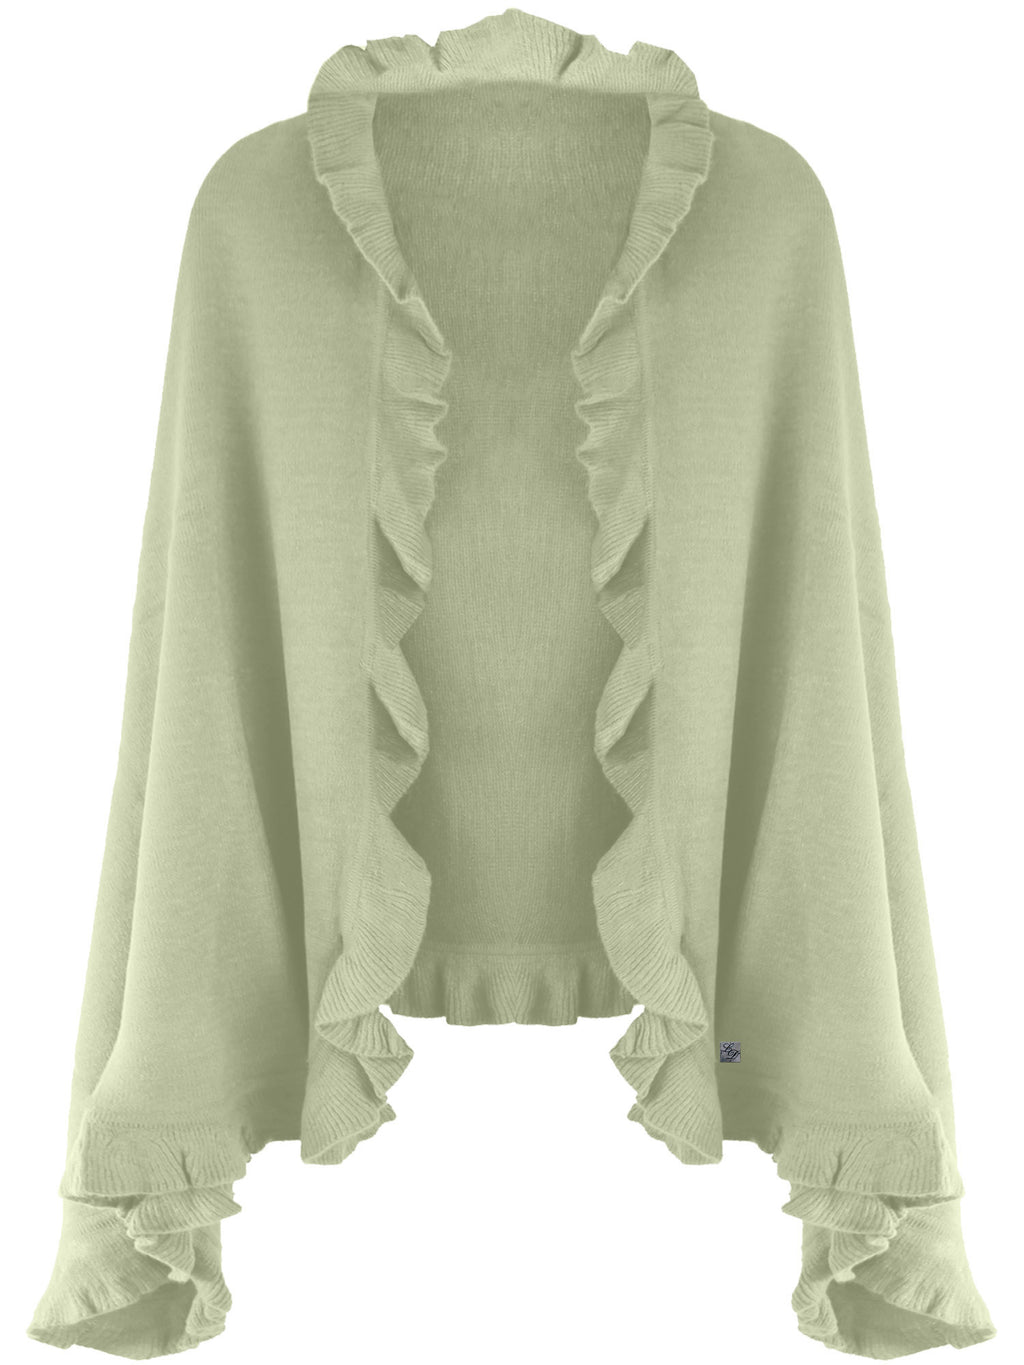 Knit Poncho Shawl With Ruffled Edge